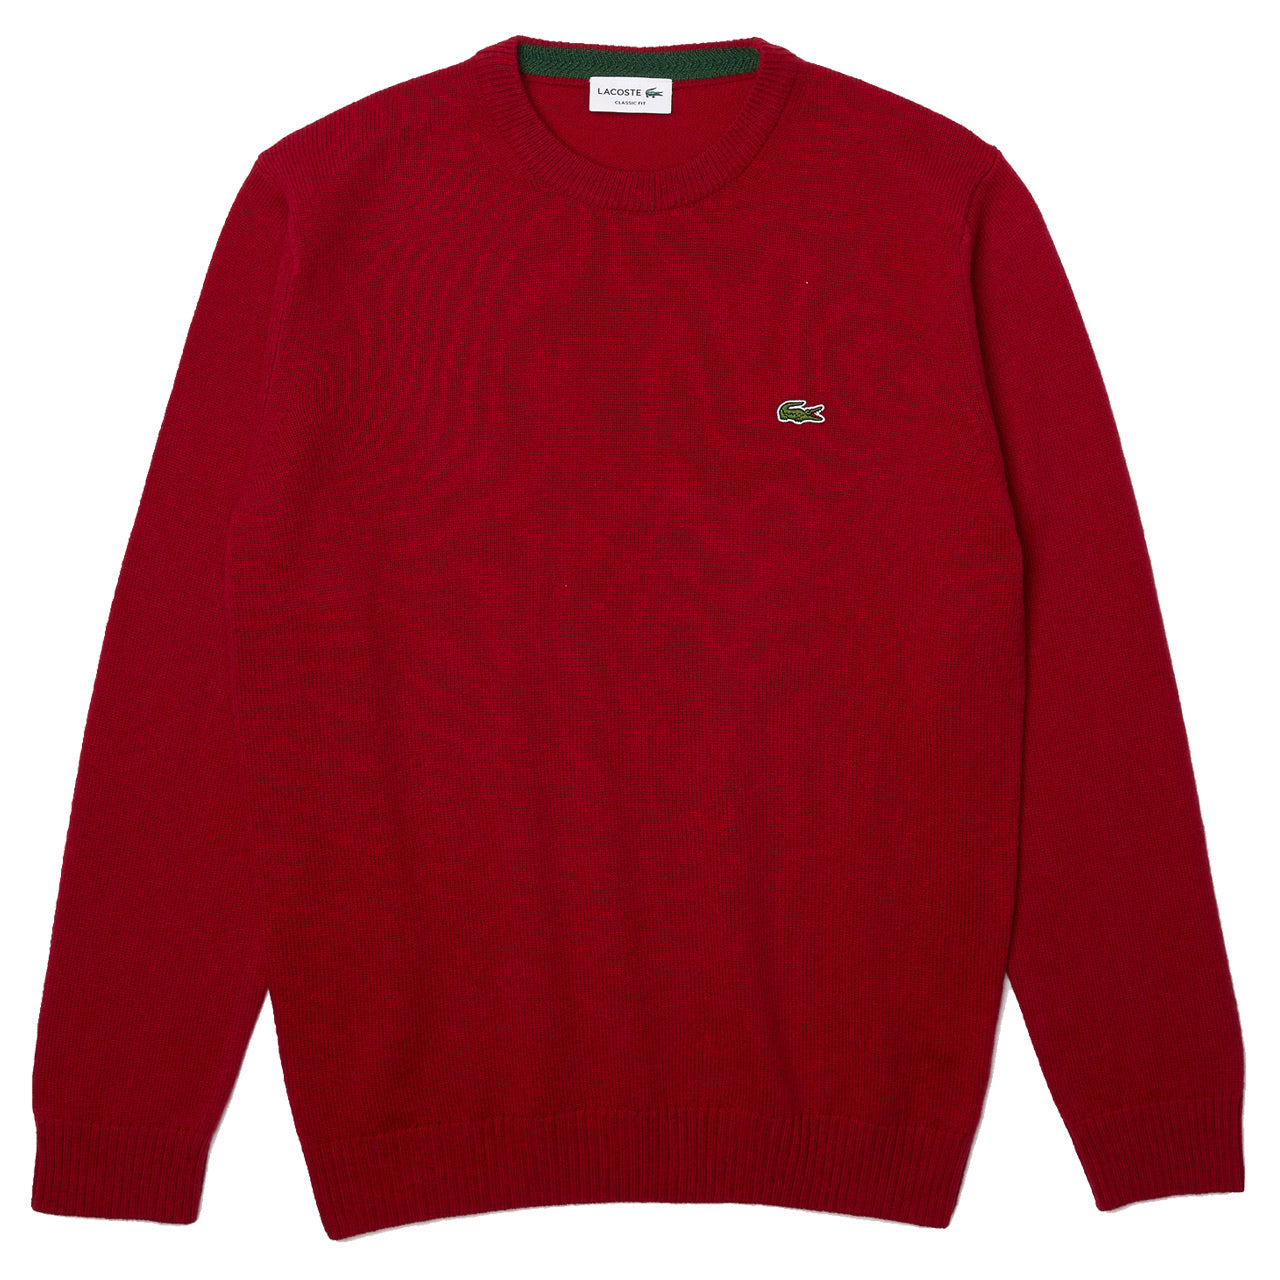 Lacoste Wool Sweater Pullover Bordeaux AH1988